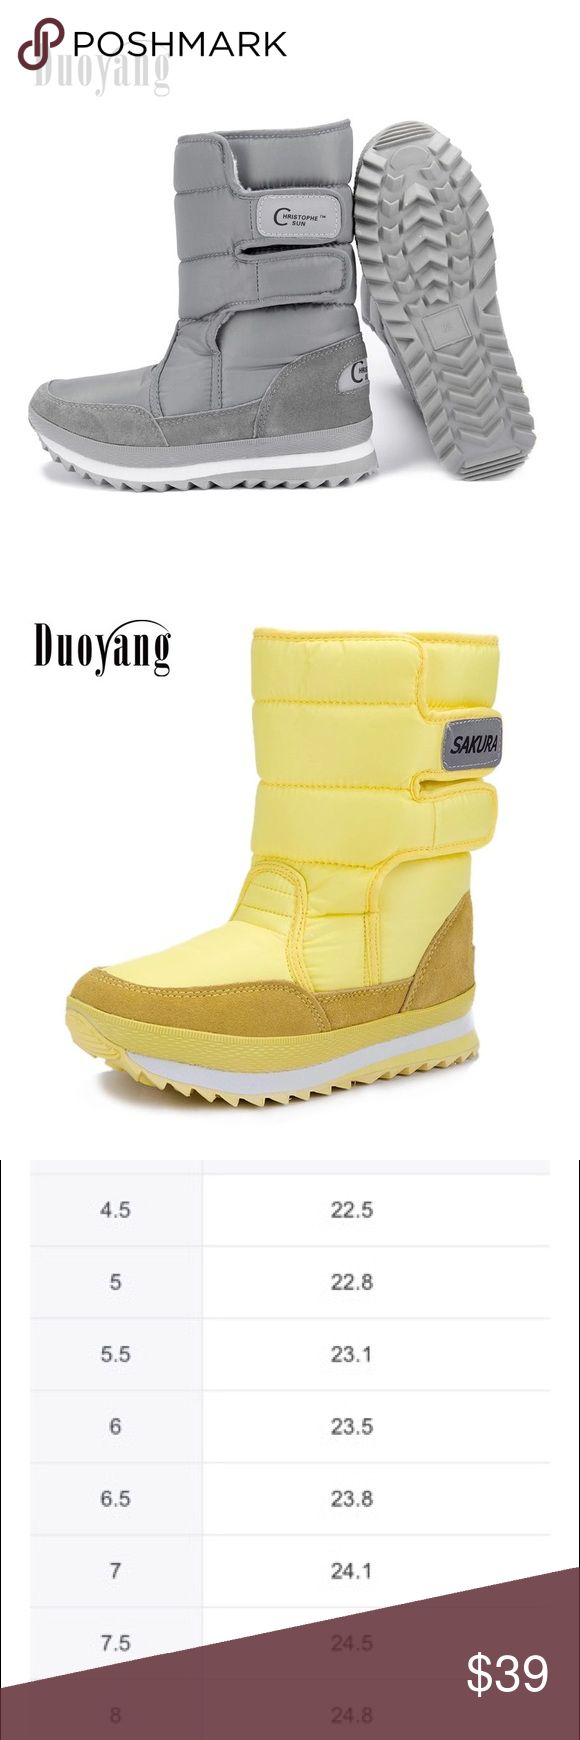 Ladies winter boots colorful snow boots 2017 Women boots 2017 fashion new arrivals warm Ladies winter boots colorful snow boots.  Colors available are yellow, red, black, blue, purple, orange, khaki, grey, rose red Shoes Winter & Rain Boots